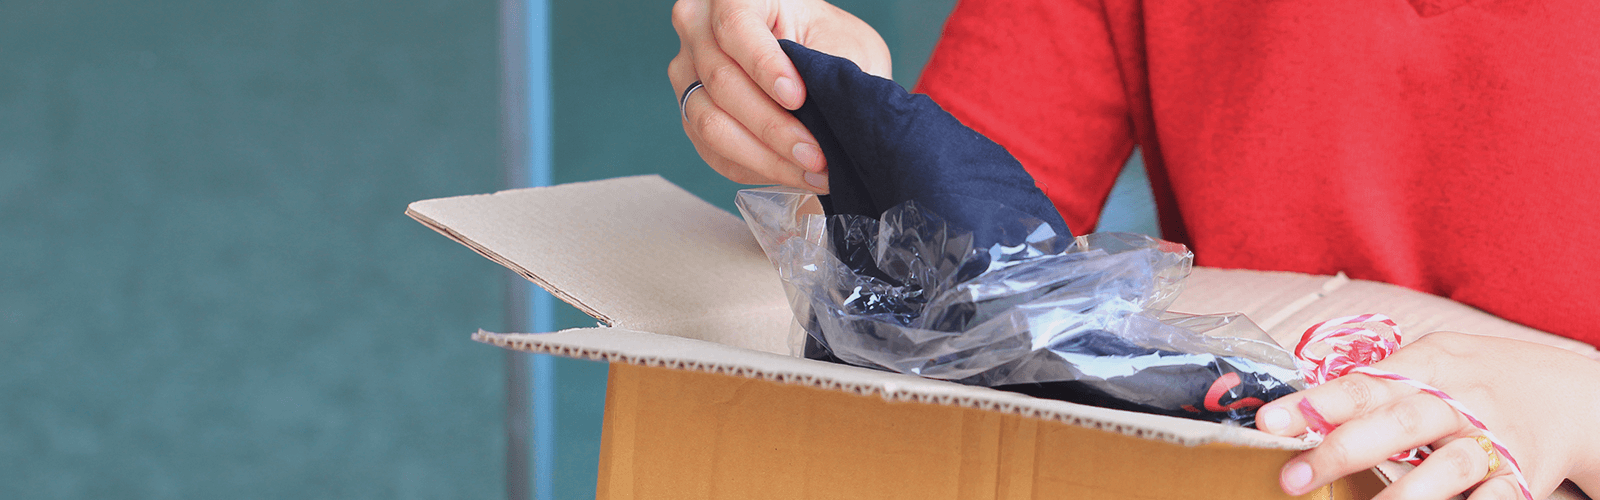 Person pulling a product out of a package.